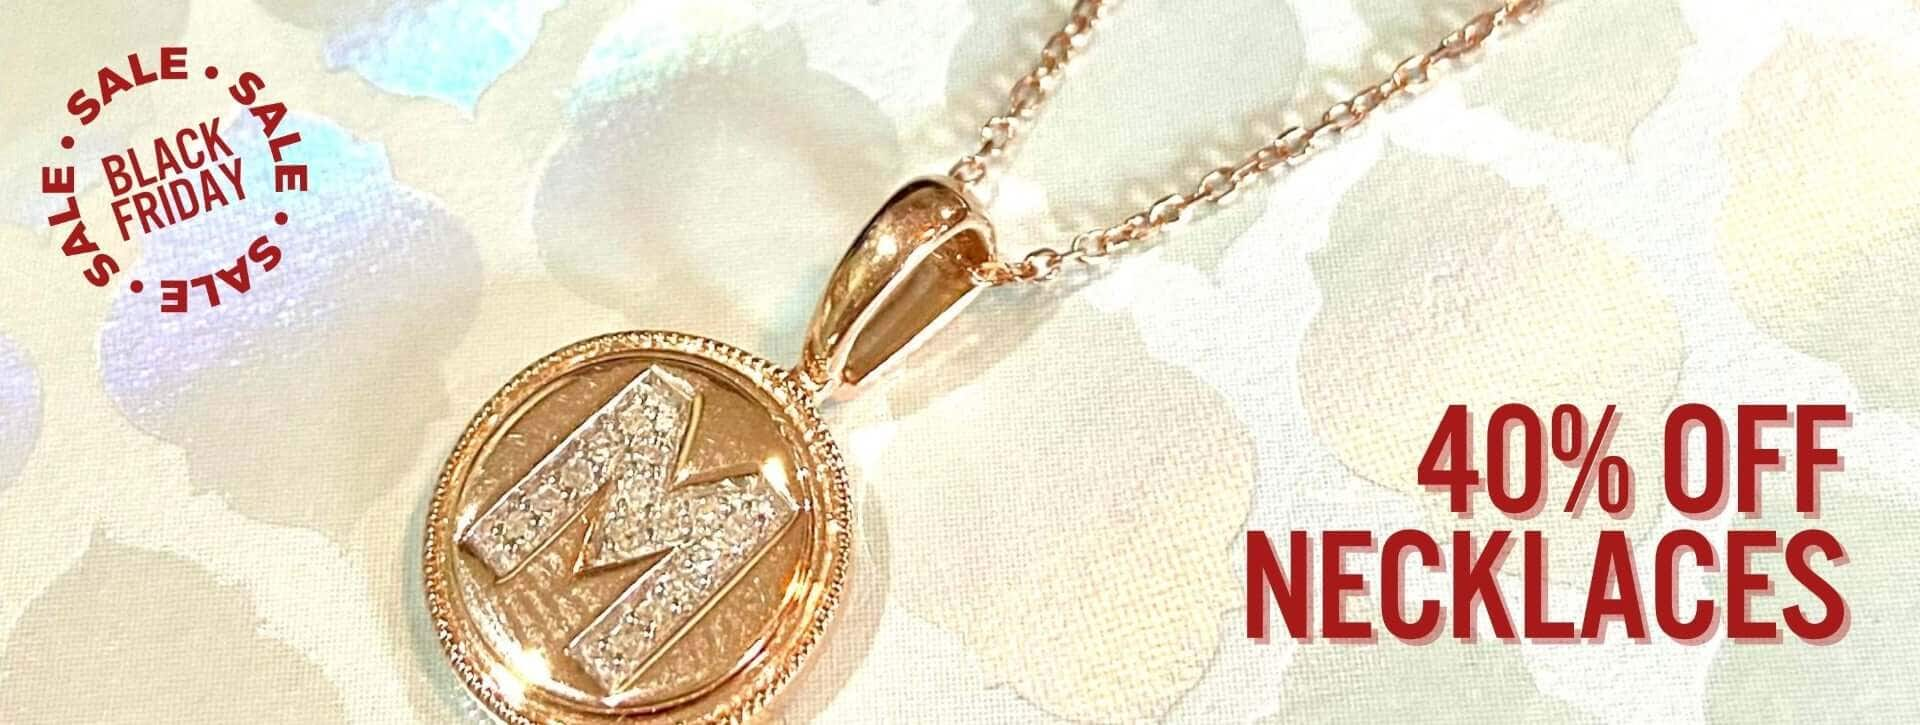 40% off necklaces